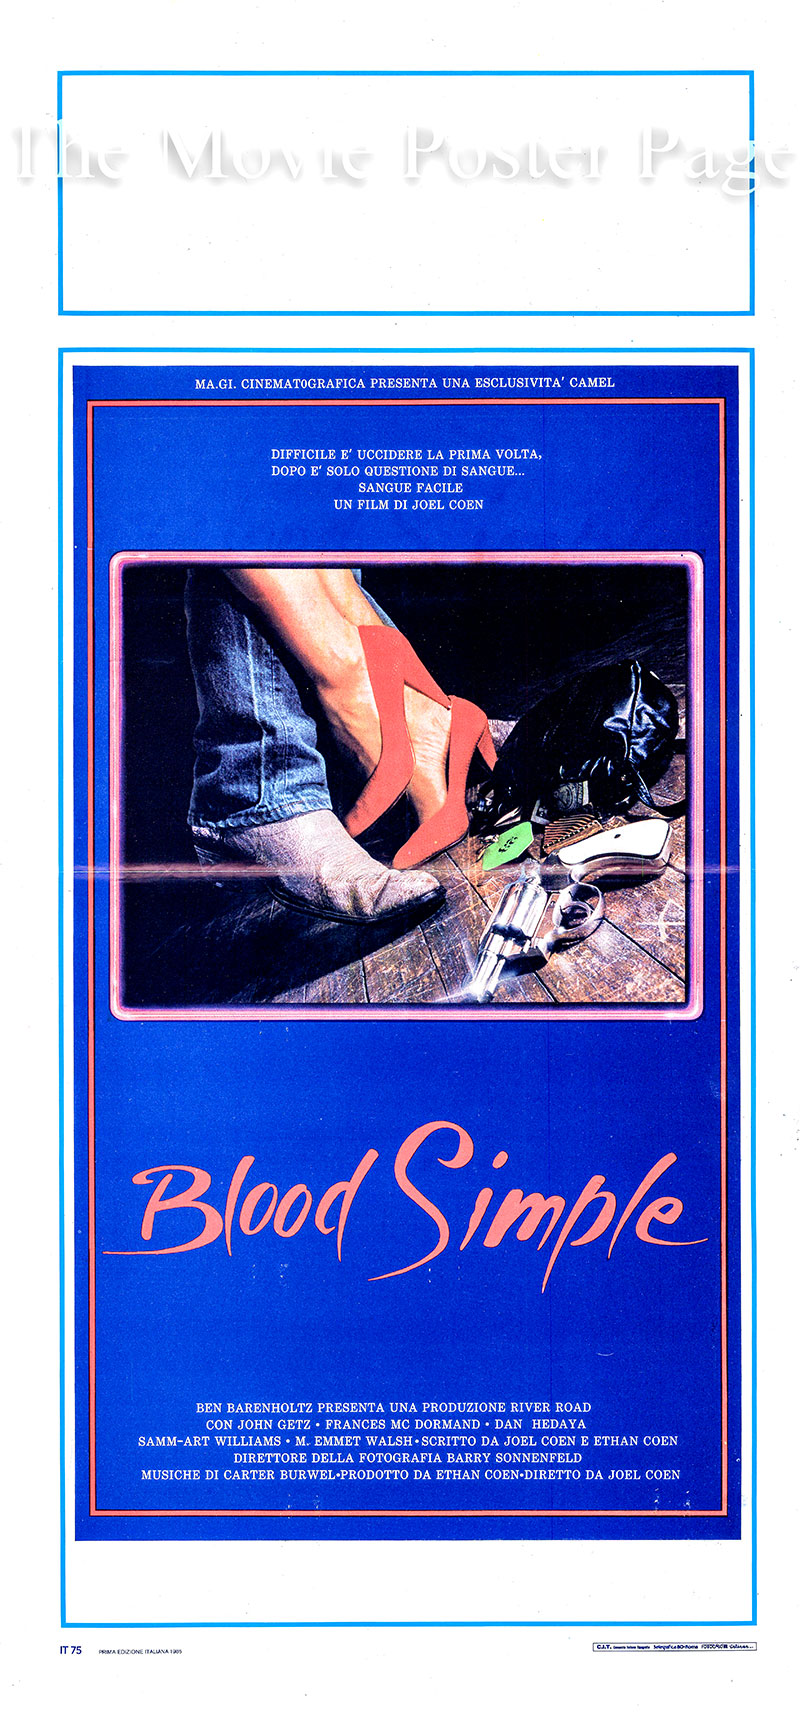 Pictured is an Italian locandina promotional poster for the 1984 Coen Brothers film <i>Blood Simple</i> starring Frances McDormand as Abby.